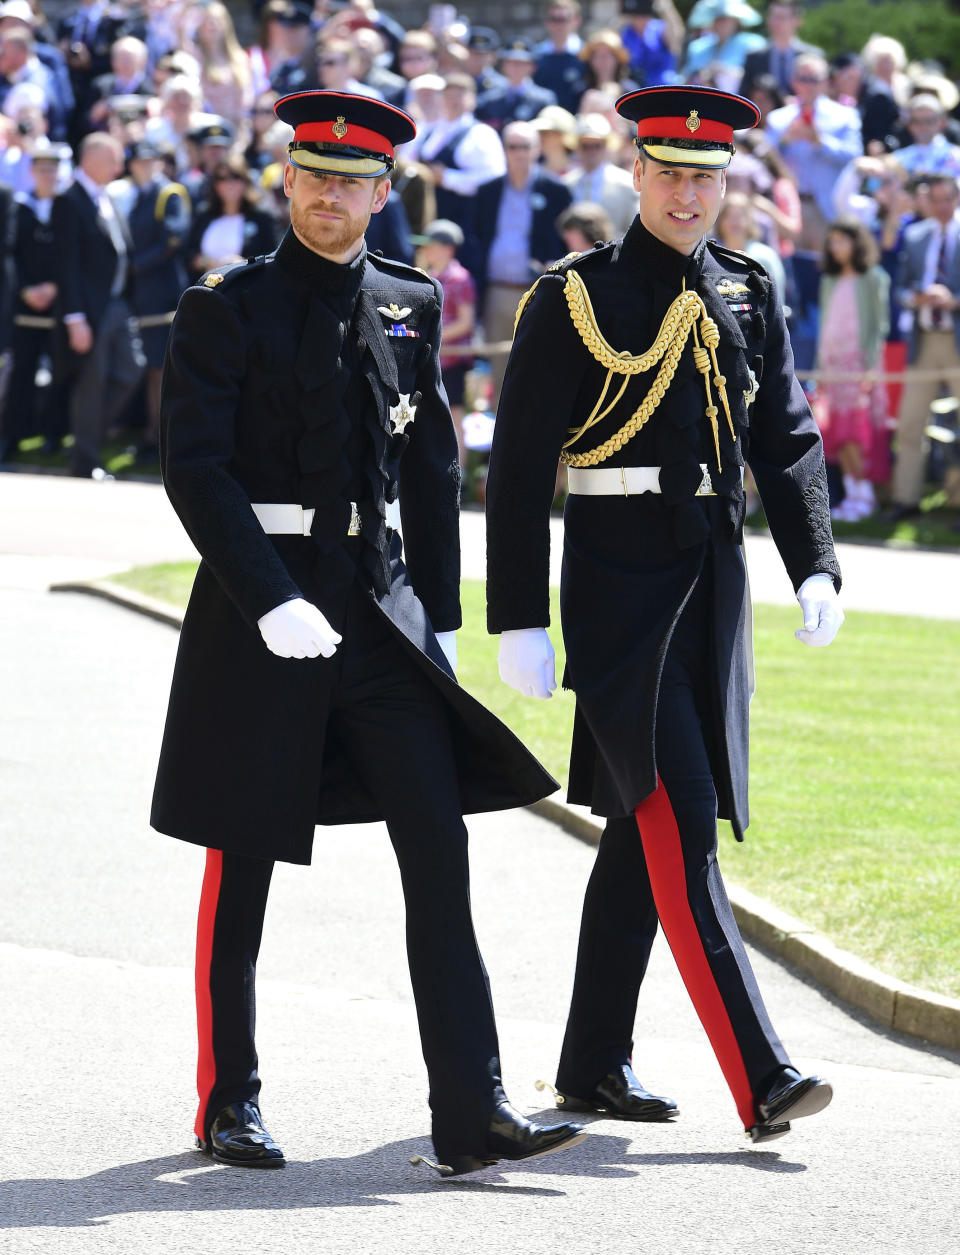 Britain's Prince Harry, left and his brother Prince William, the Duke of Cambridge arrive for the wedding ceremony of Prince Harry and Meghan Markle at St. George's Chapel in Windsor Castle in Windsor, near London, England, Saturday, May 19, 2018. (Ian West/pool photo via AP)